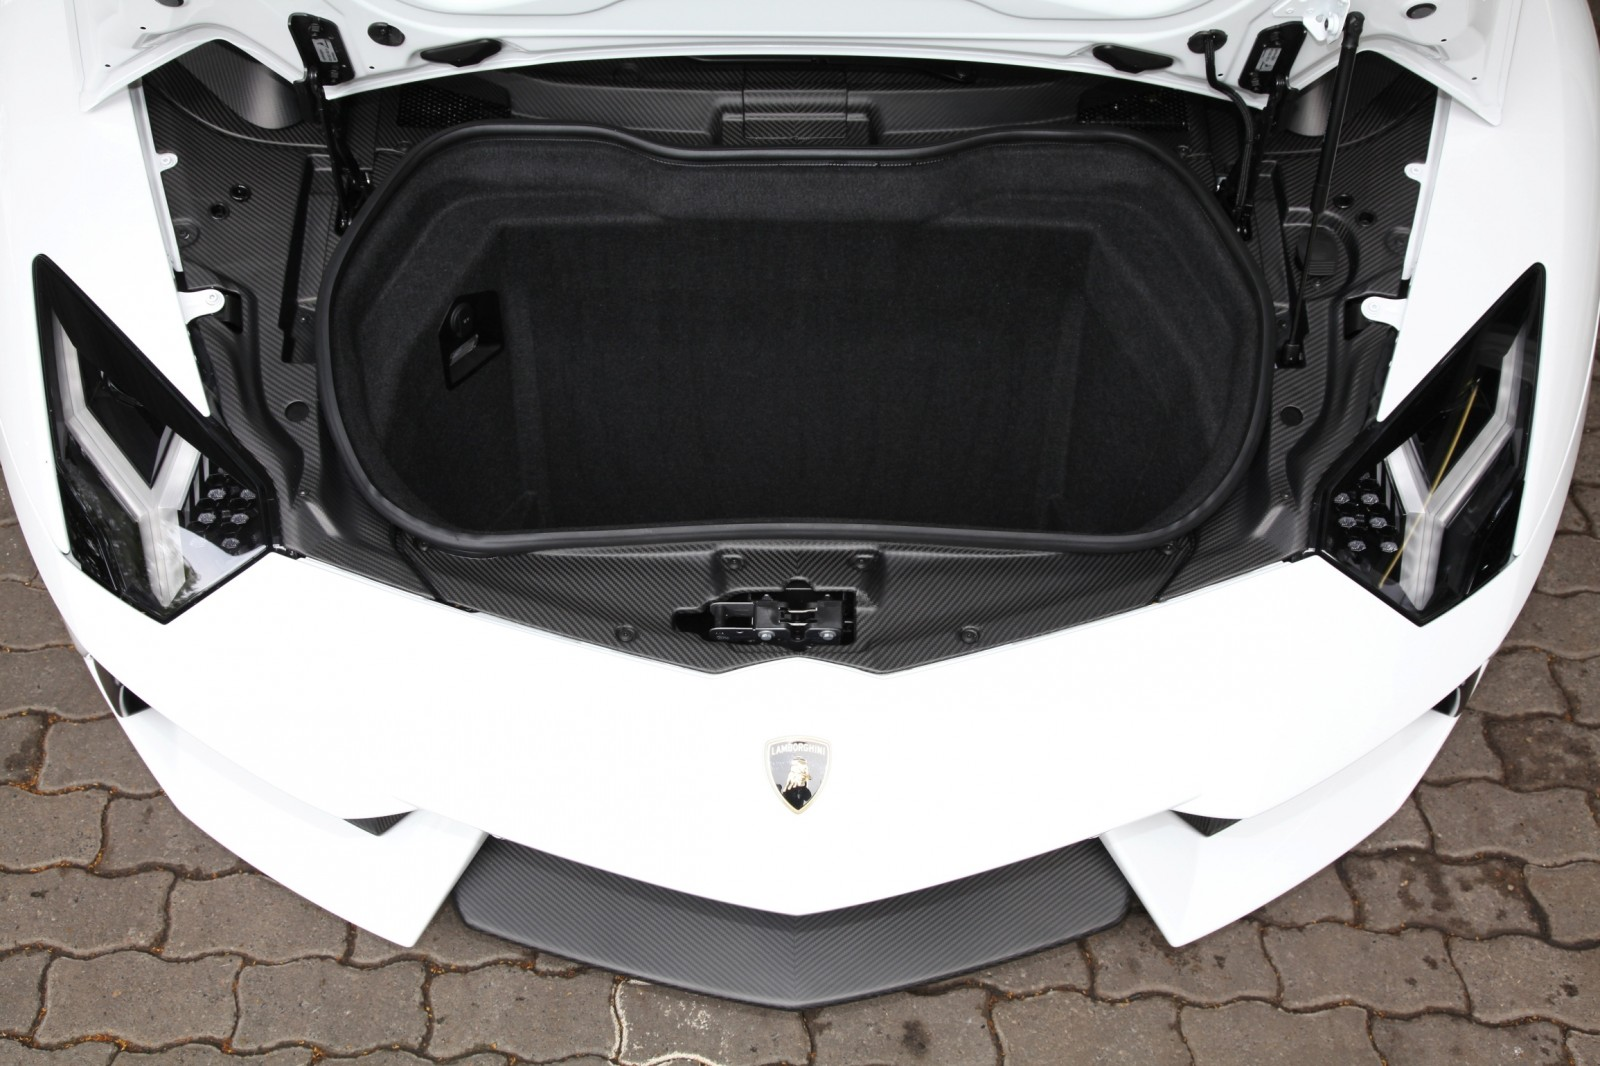 Lamborghini Aventador Becomes A Real Screamer With CAPRISTO Exhaust Upgrade 13